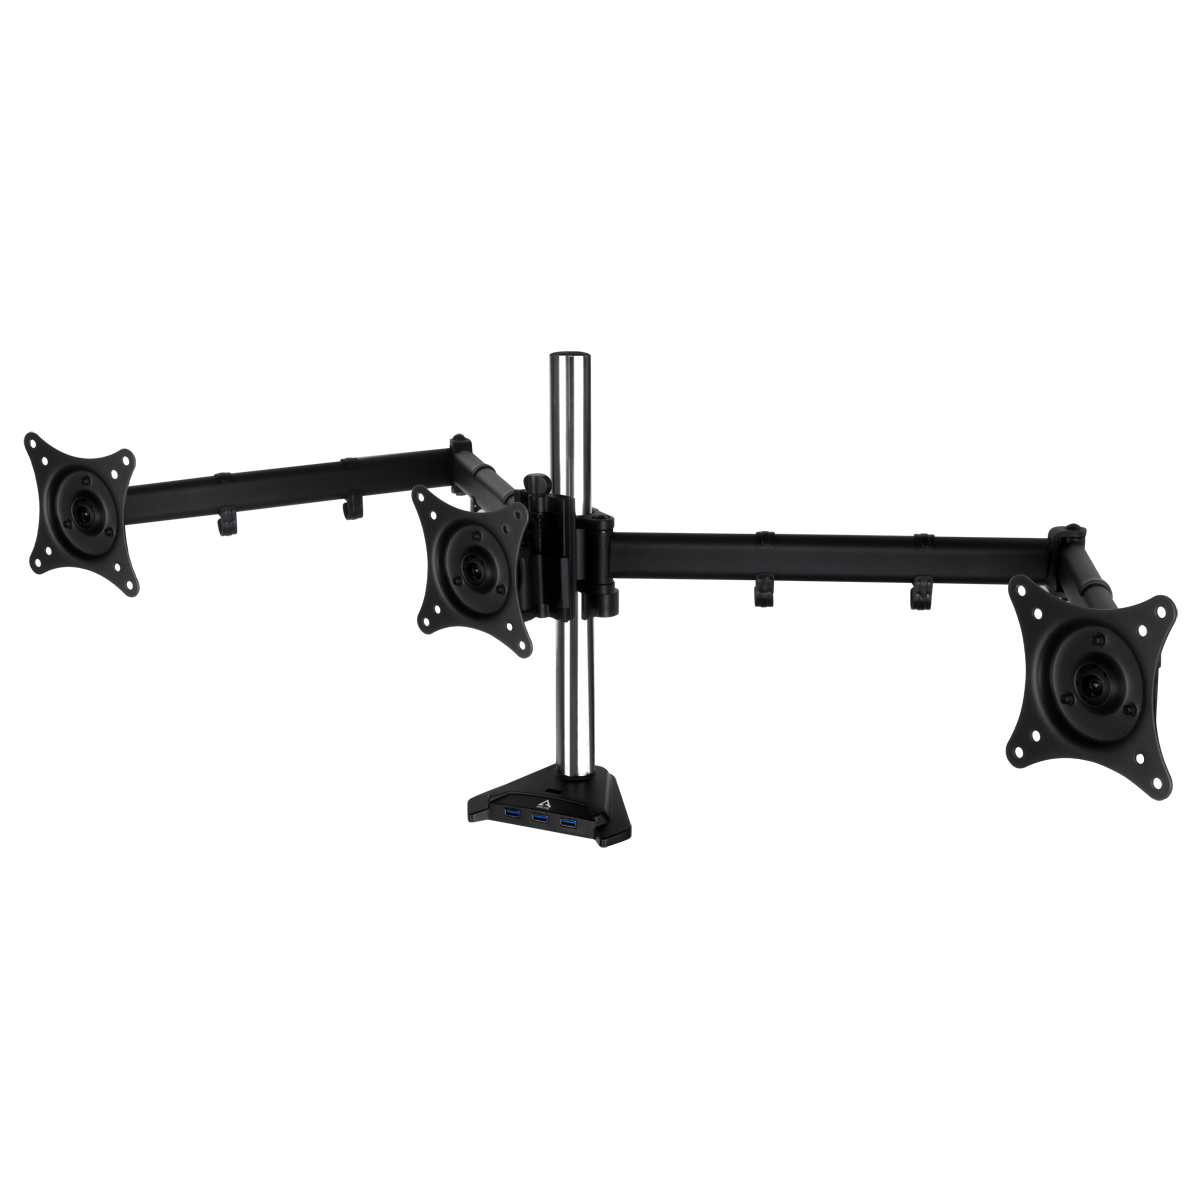 Desk Mount Triple Monitor Arm with SuperSpeed USB Hub ARCTIC Z3 Pro (Gen 3)